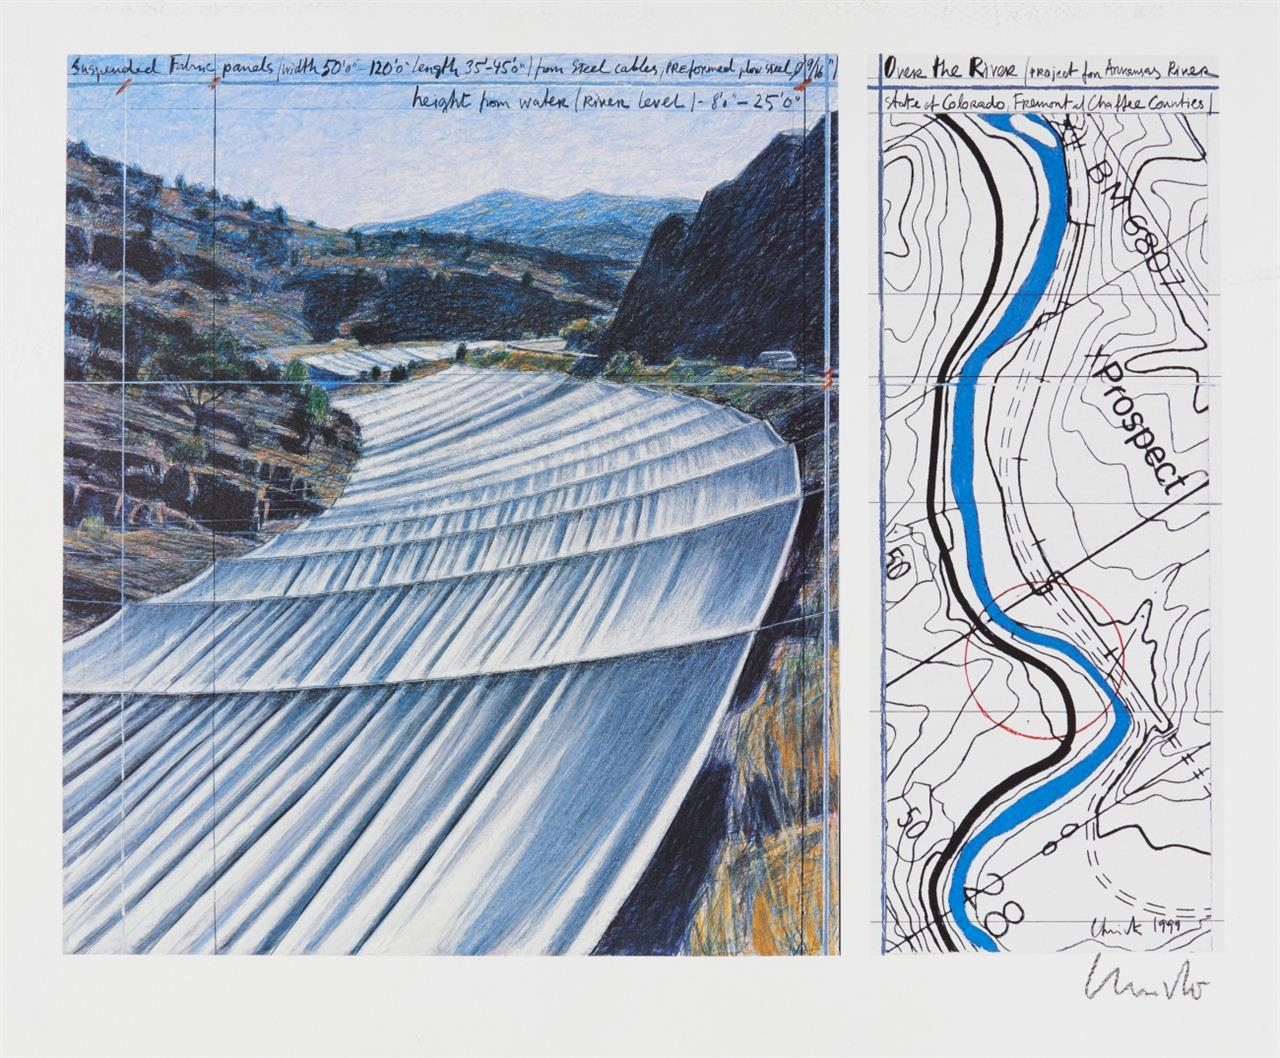 Christo. Over the River, Project for the Arkansas River. 1999. Farboffset. Signiert.